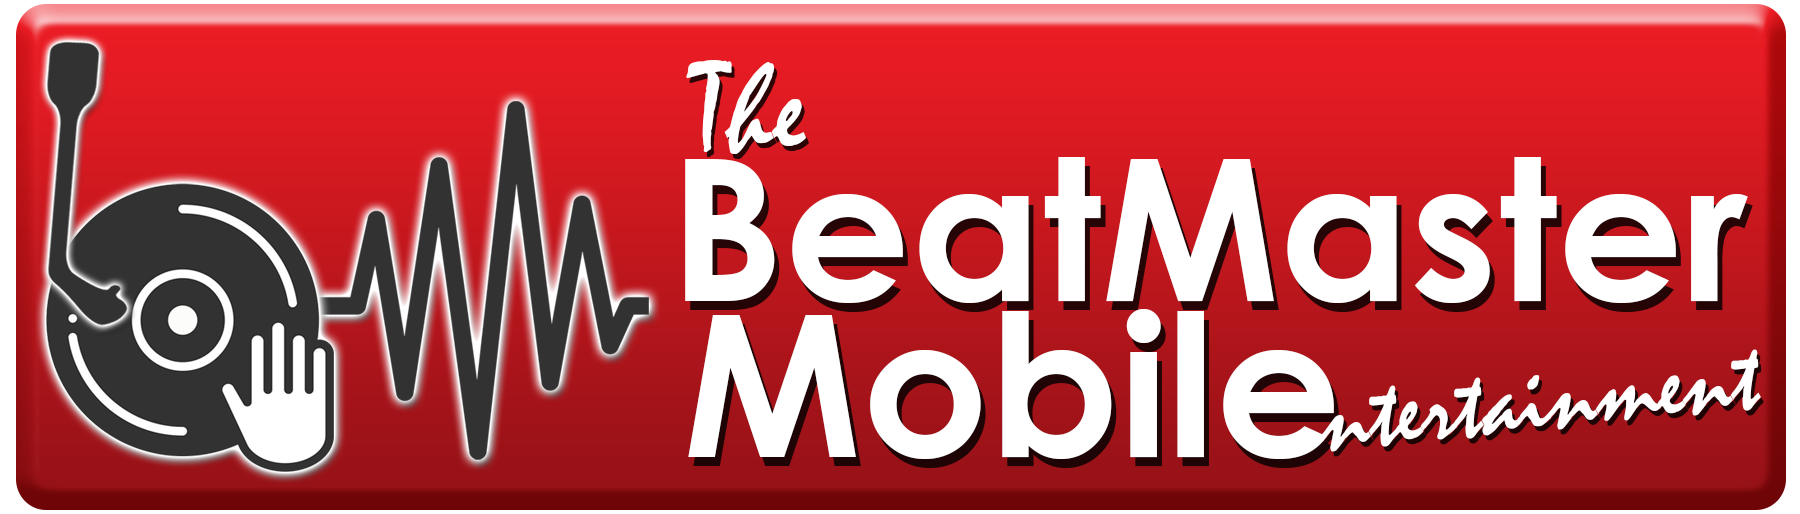 The BeatMaster Mobile